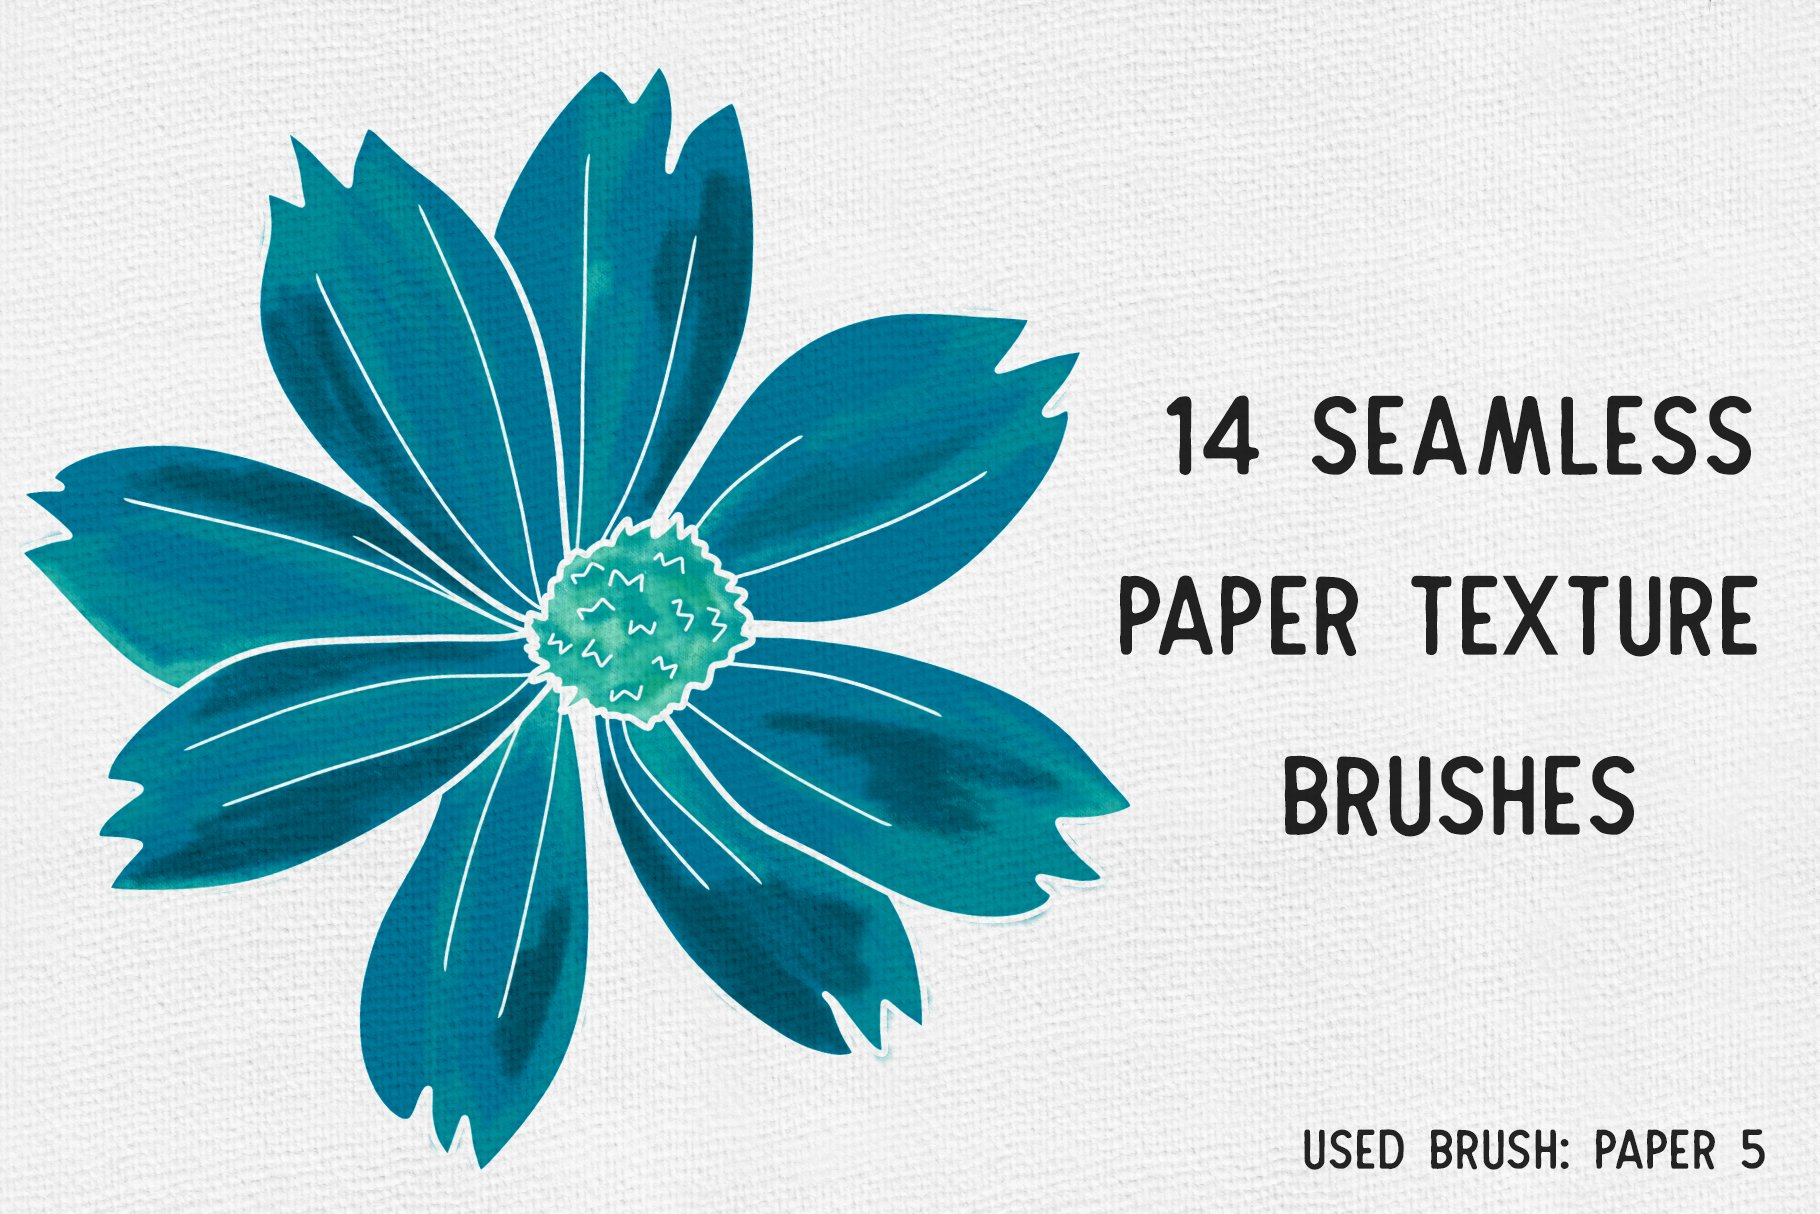 Paper Texture Procreate Brushes